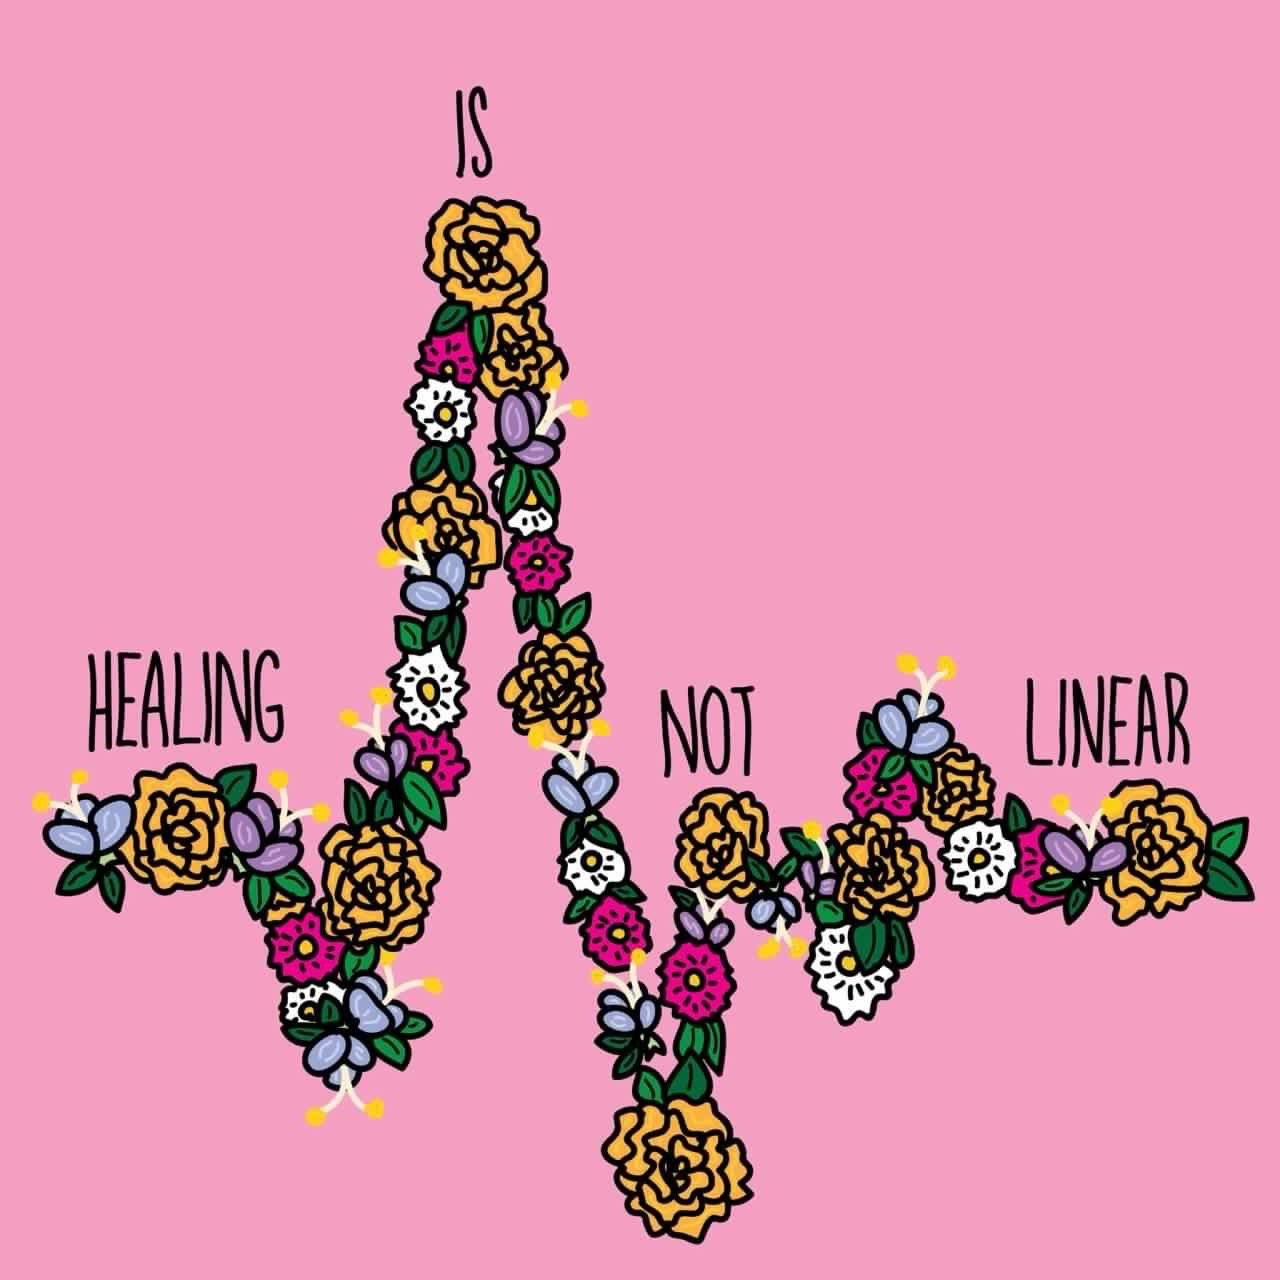 And if healing isn't linear, either is life, so don't try to make it!